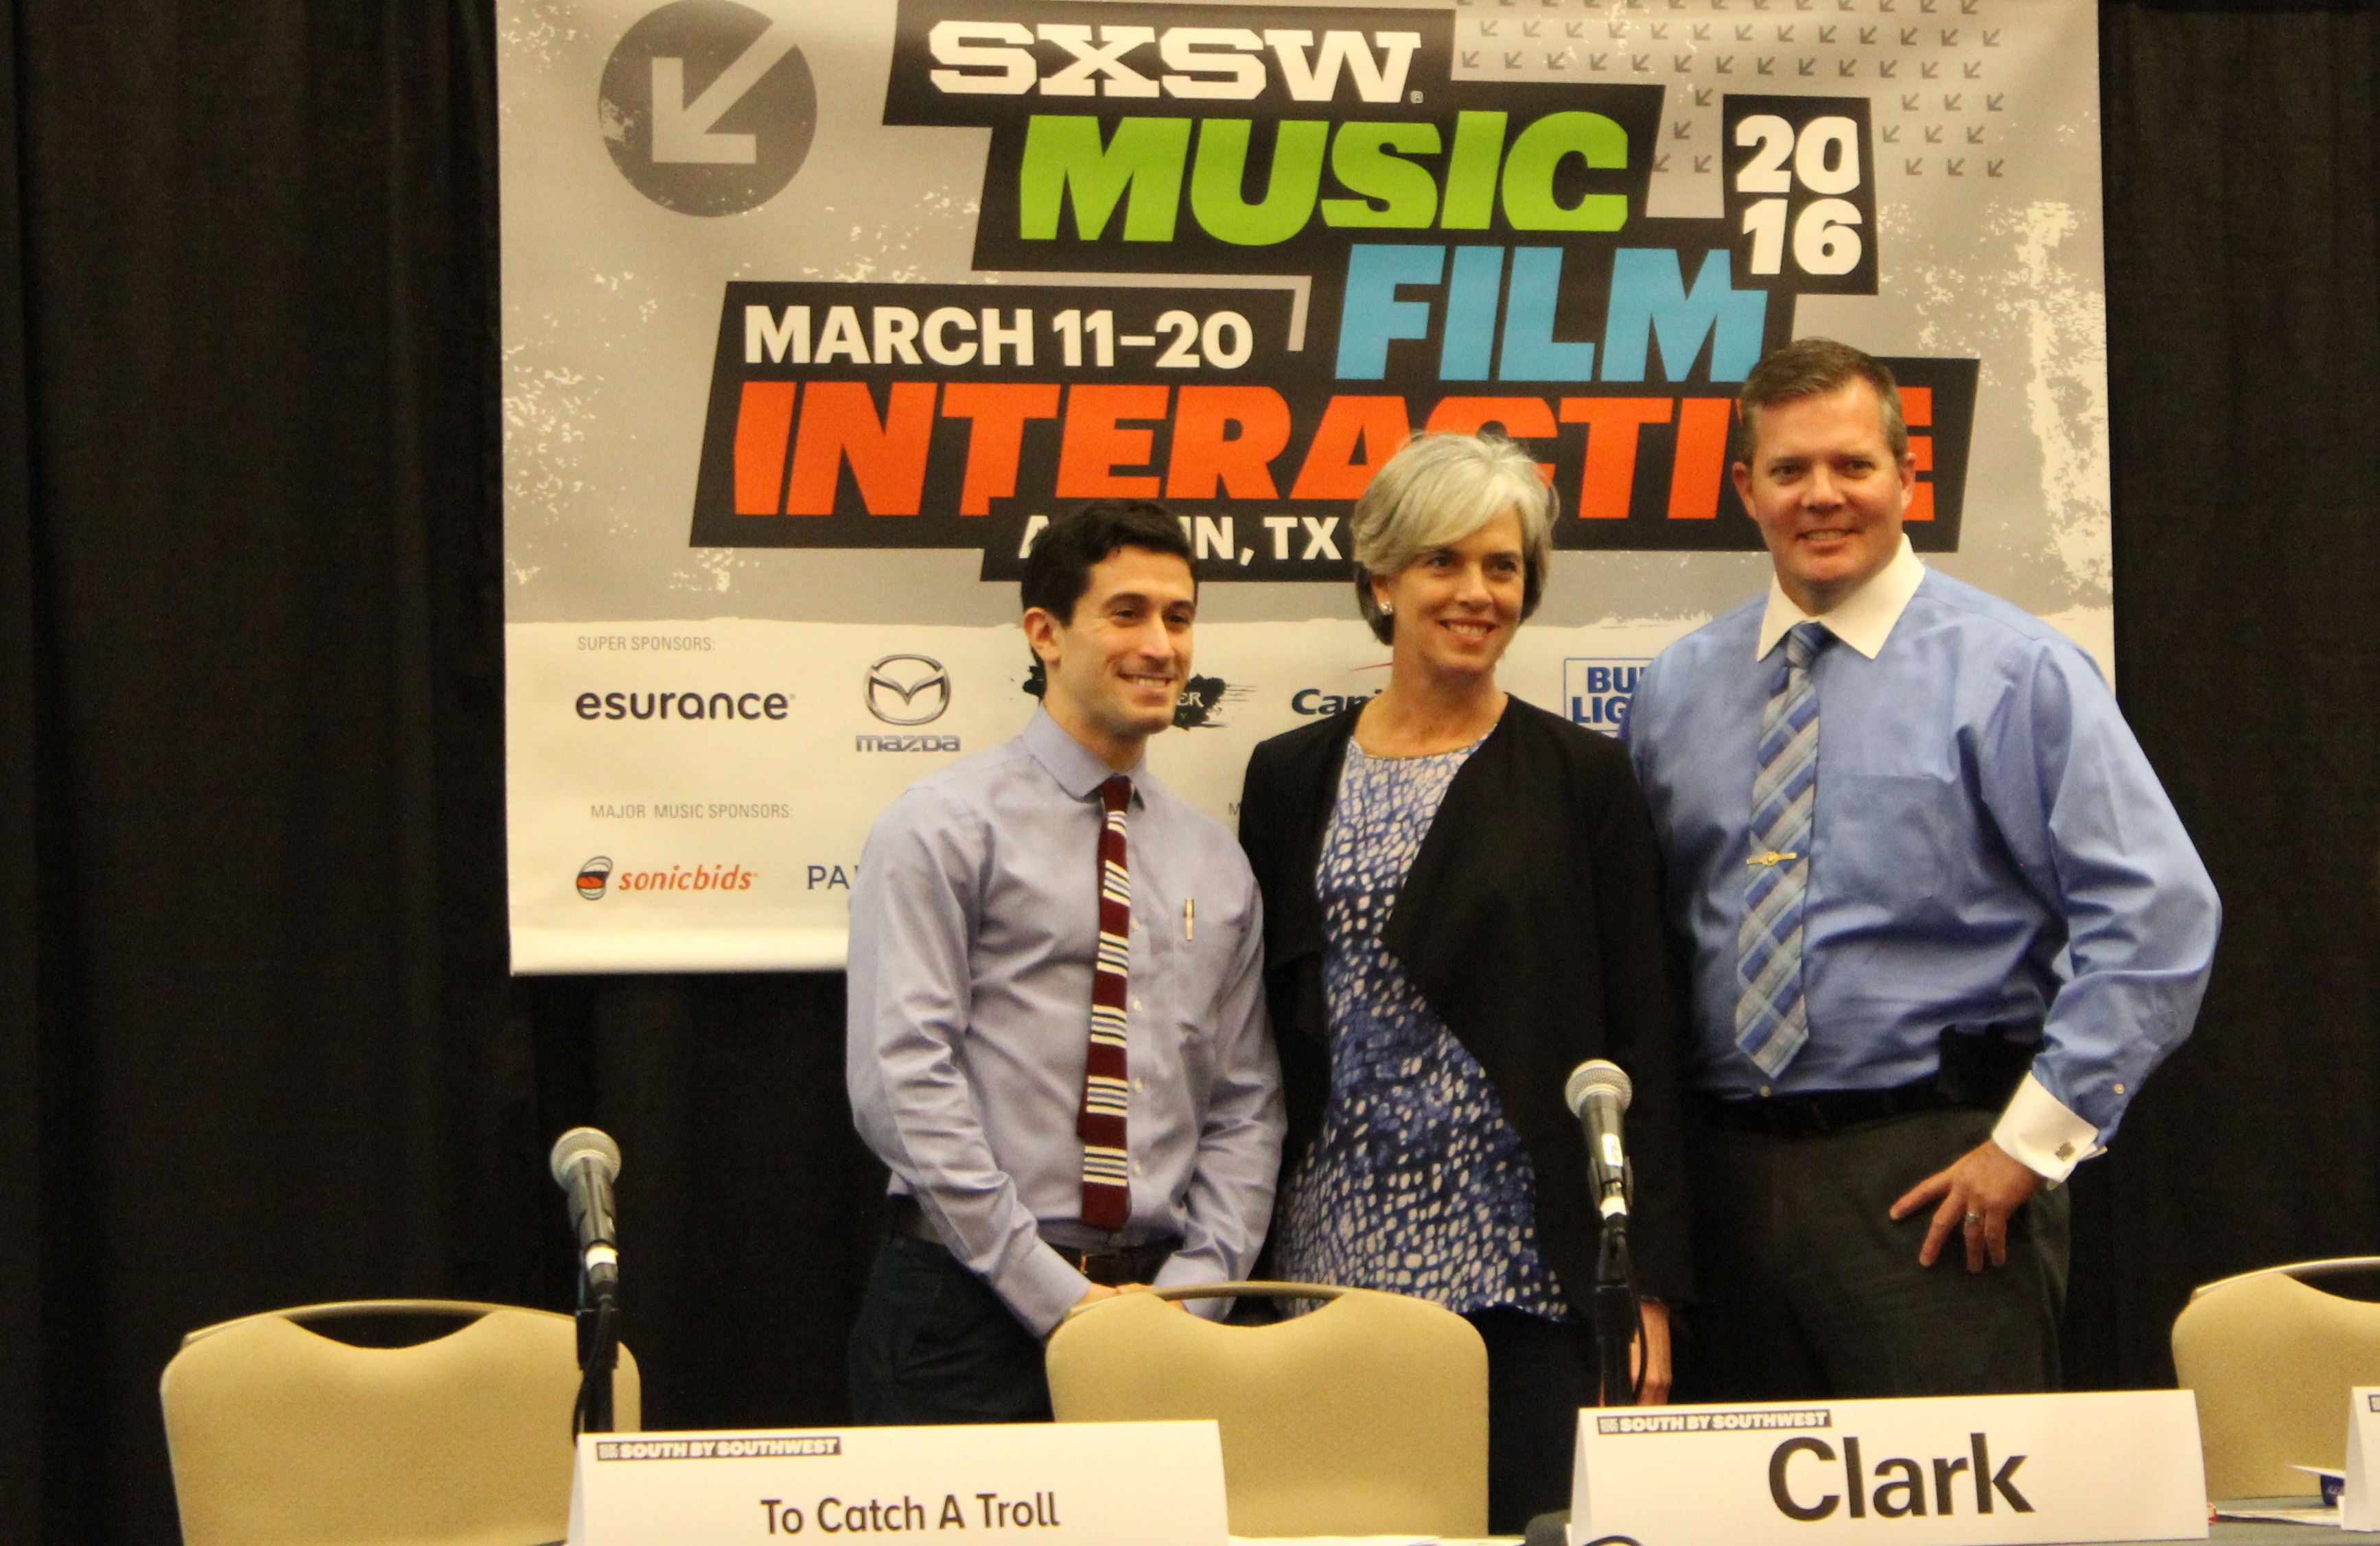 US Representative Katherine Clark (D-Mass.) appears at the first-ever South By Southwest Online Harassment Summit alongside New York Law School professor Ari Waldman(left) and Johns Creek, GA police sergeant BA Finley.